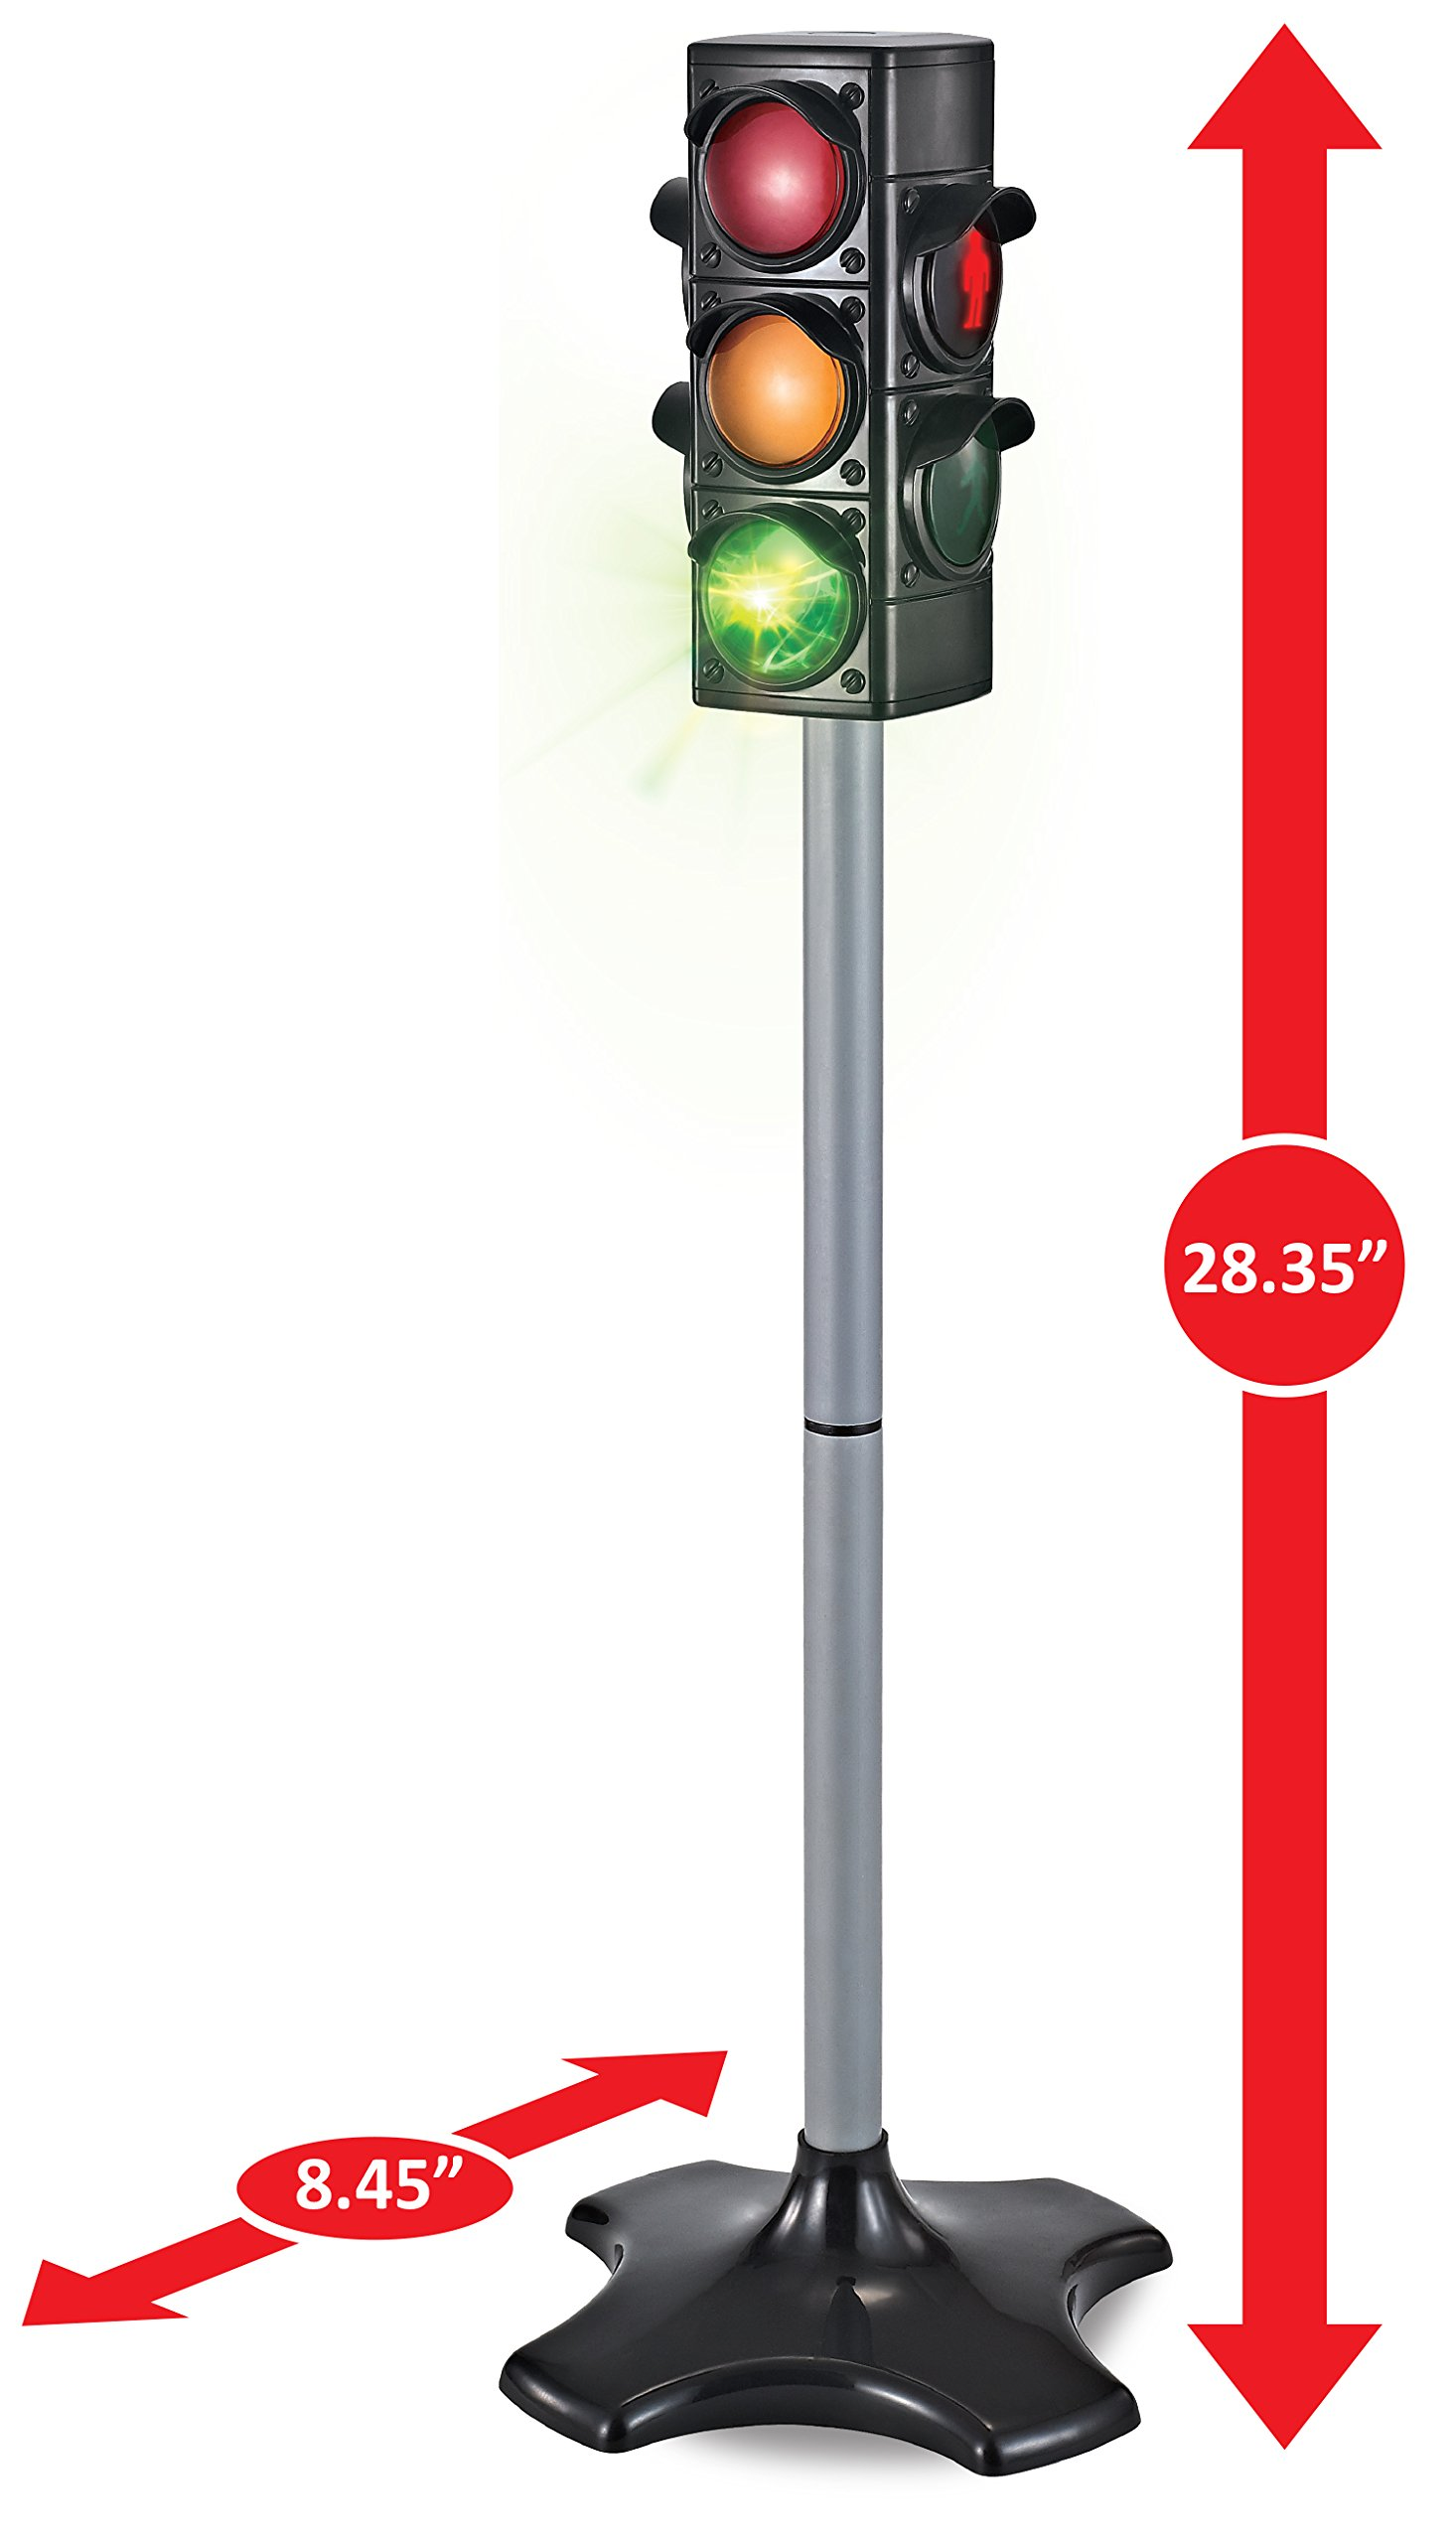 MMP Living Toy Traffic & Crosswalk Signal with Light & Sound - 4 Sided, Over 2 feet Tall by MMP Living (Image #3)